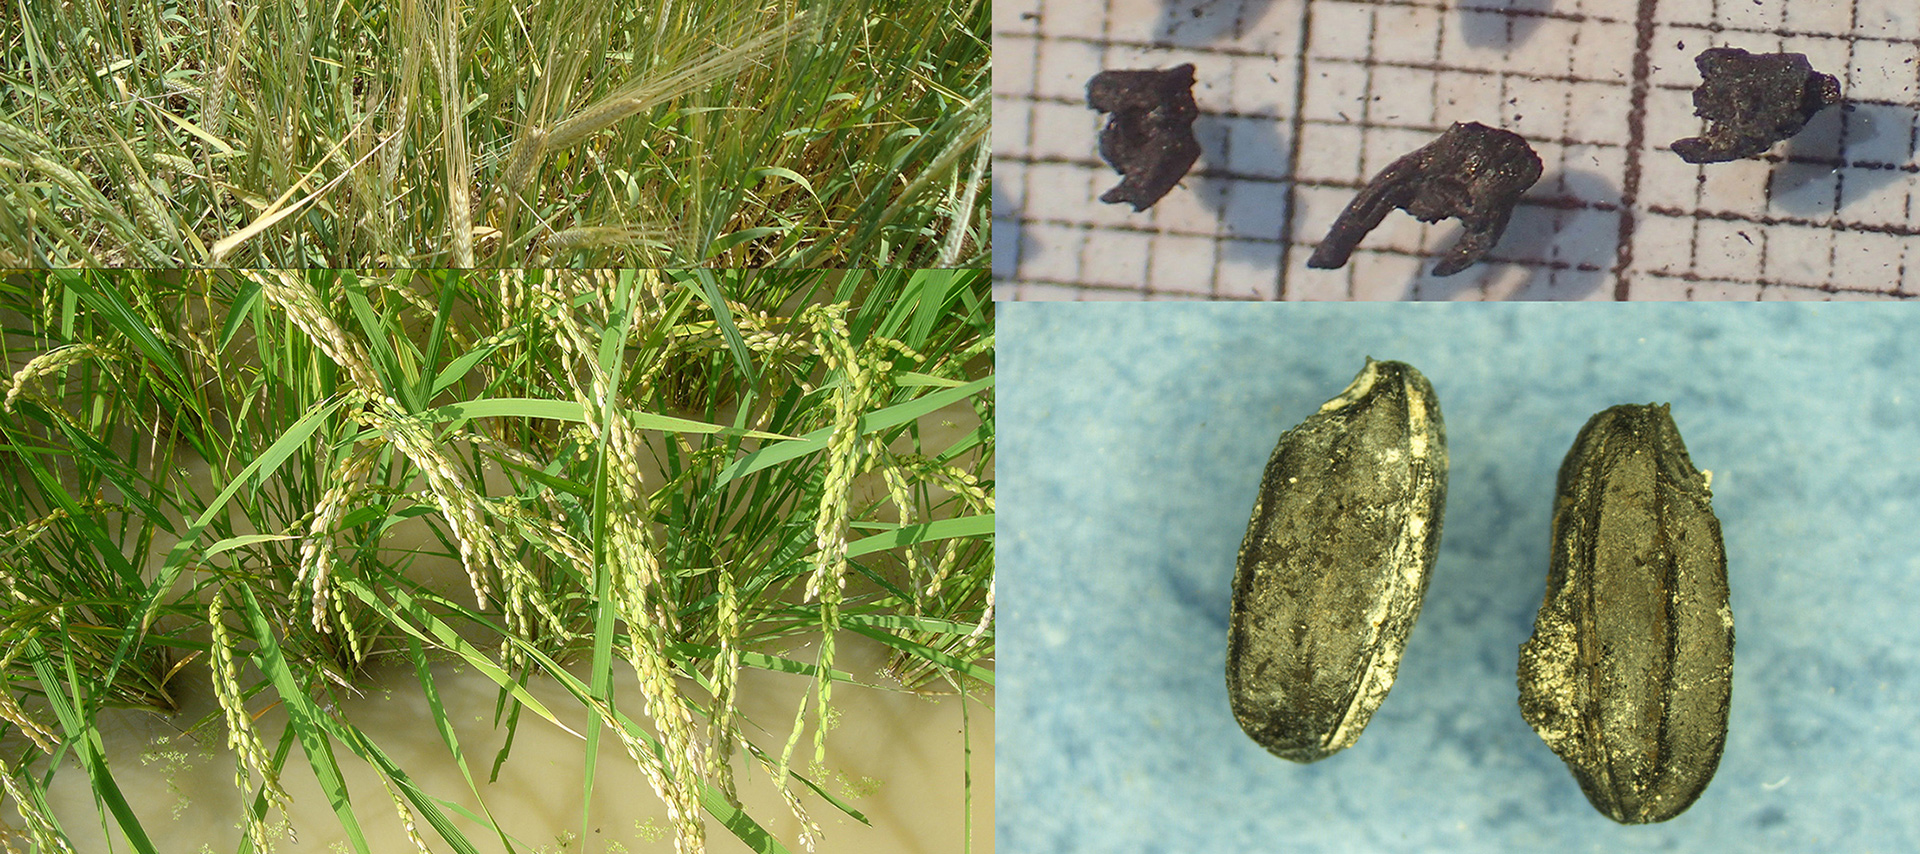 composite image showing grasses and seeds